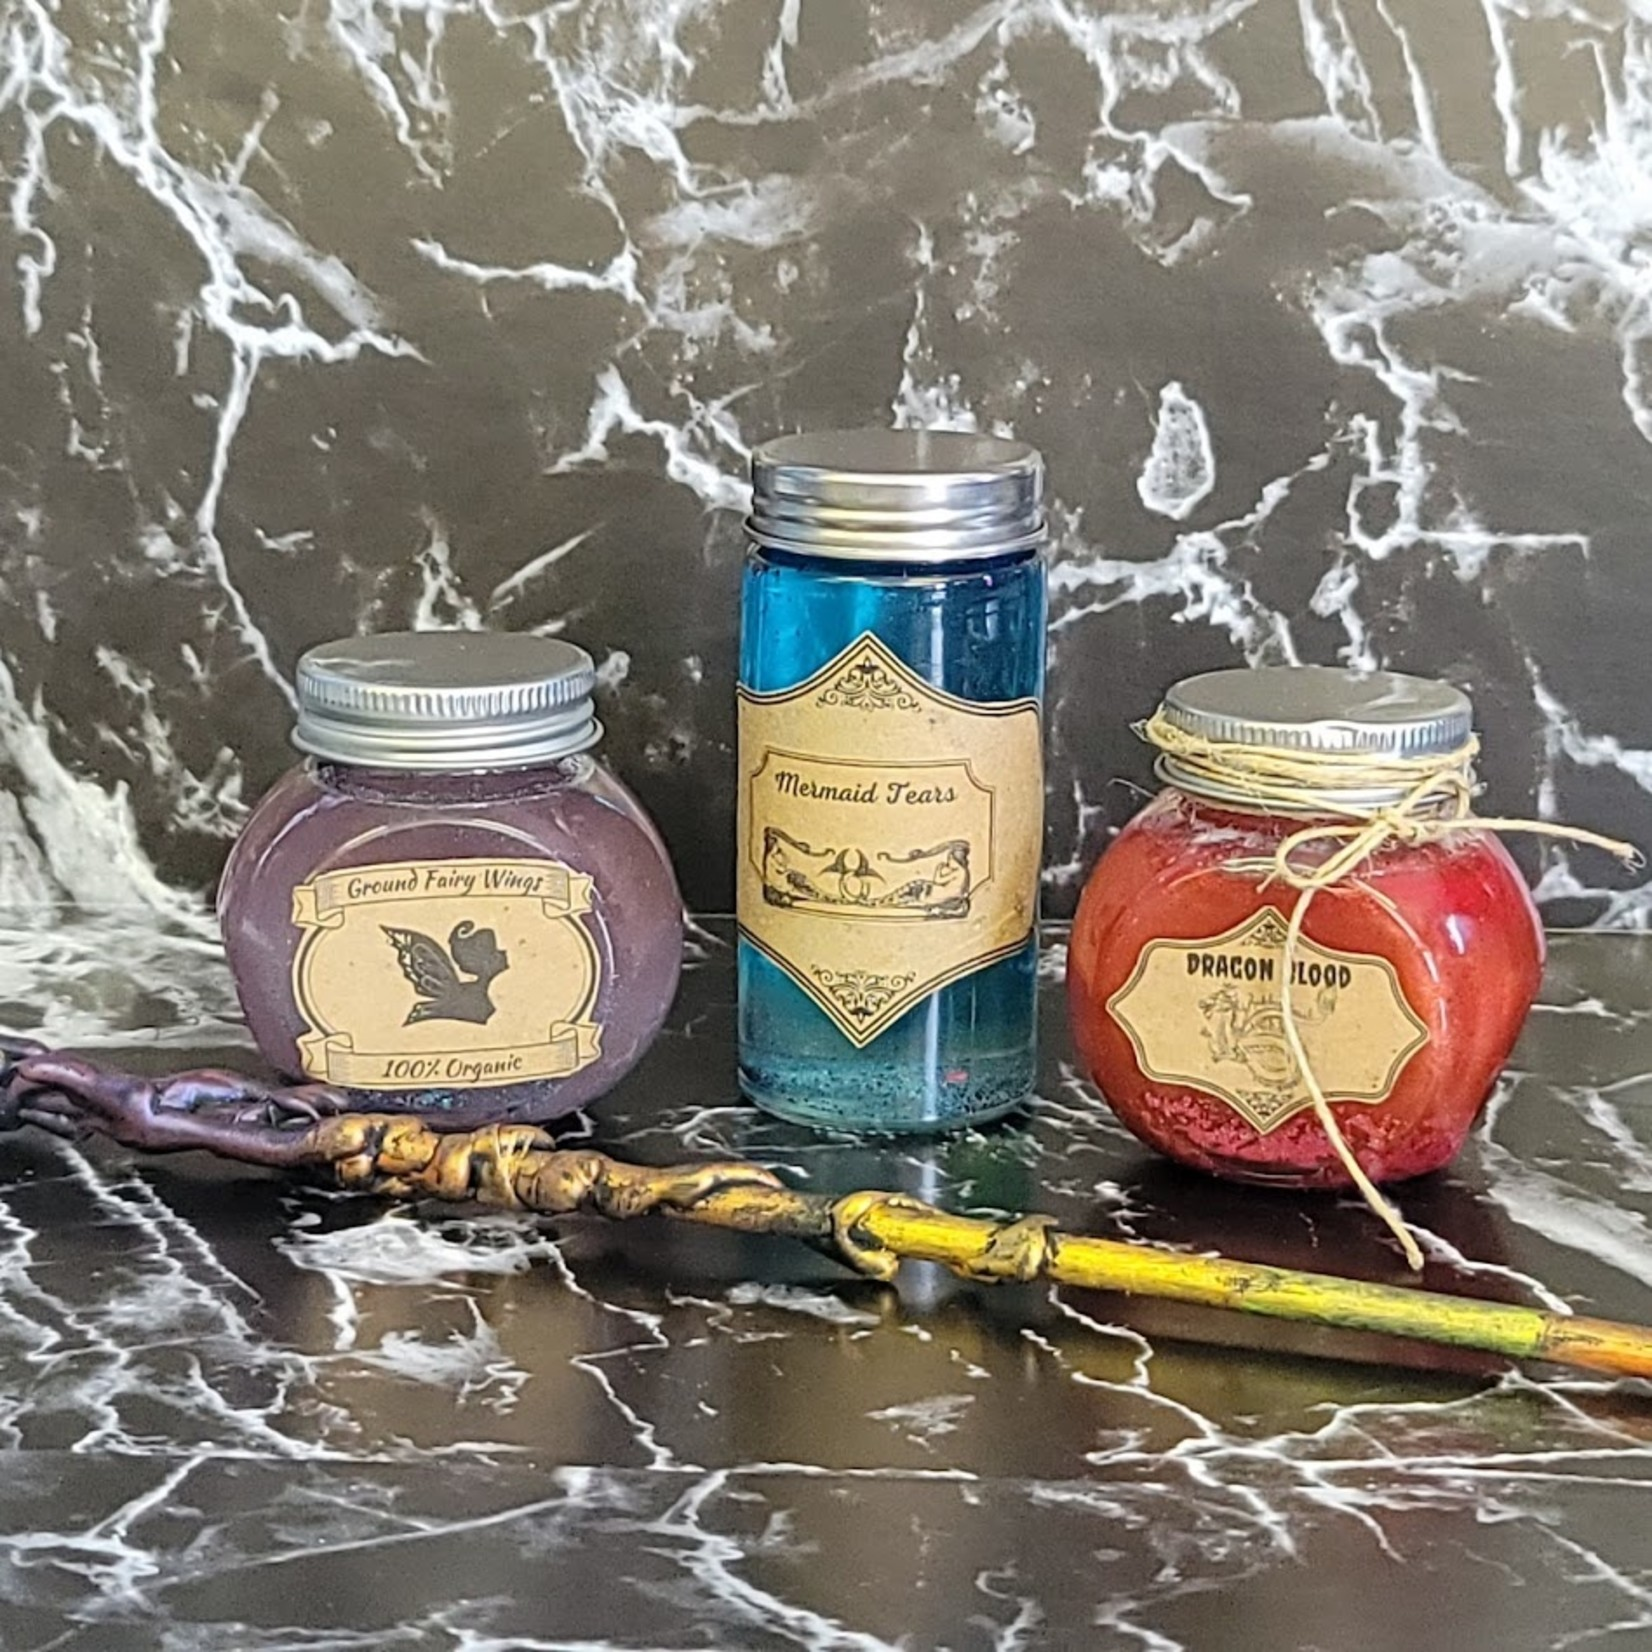 PRE-ORDER Crafting with Sean DIY kits - Potions and Wands